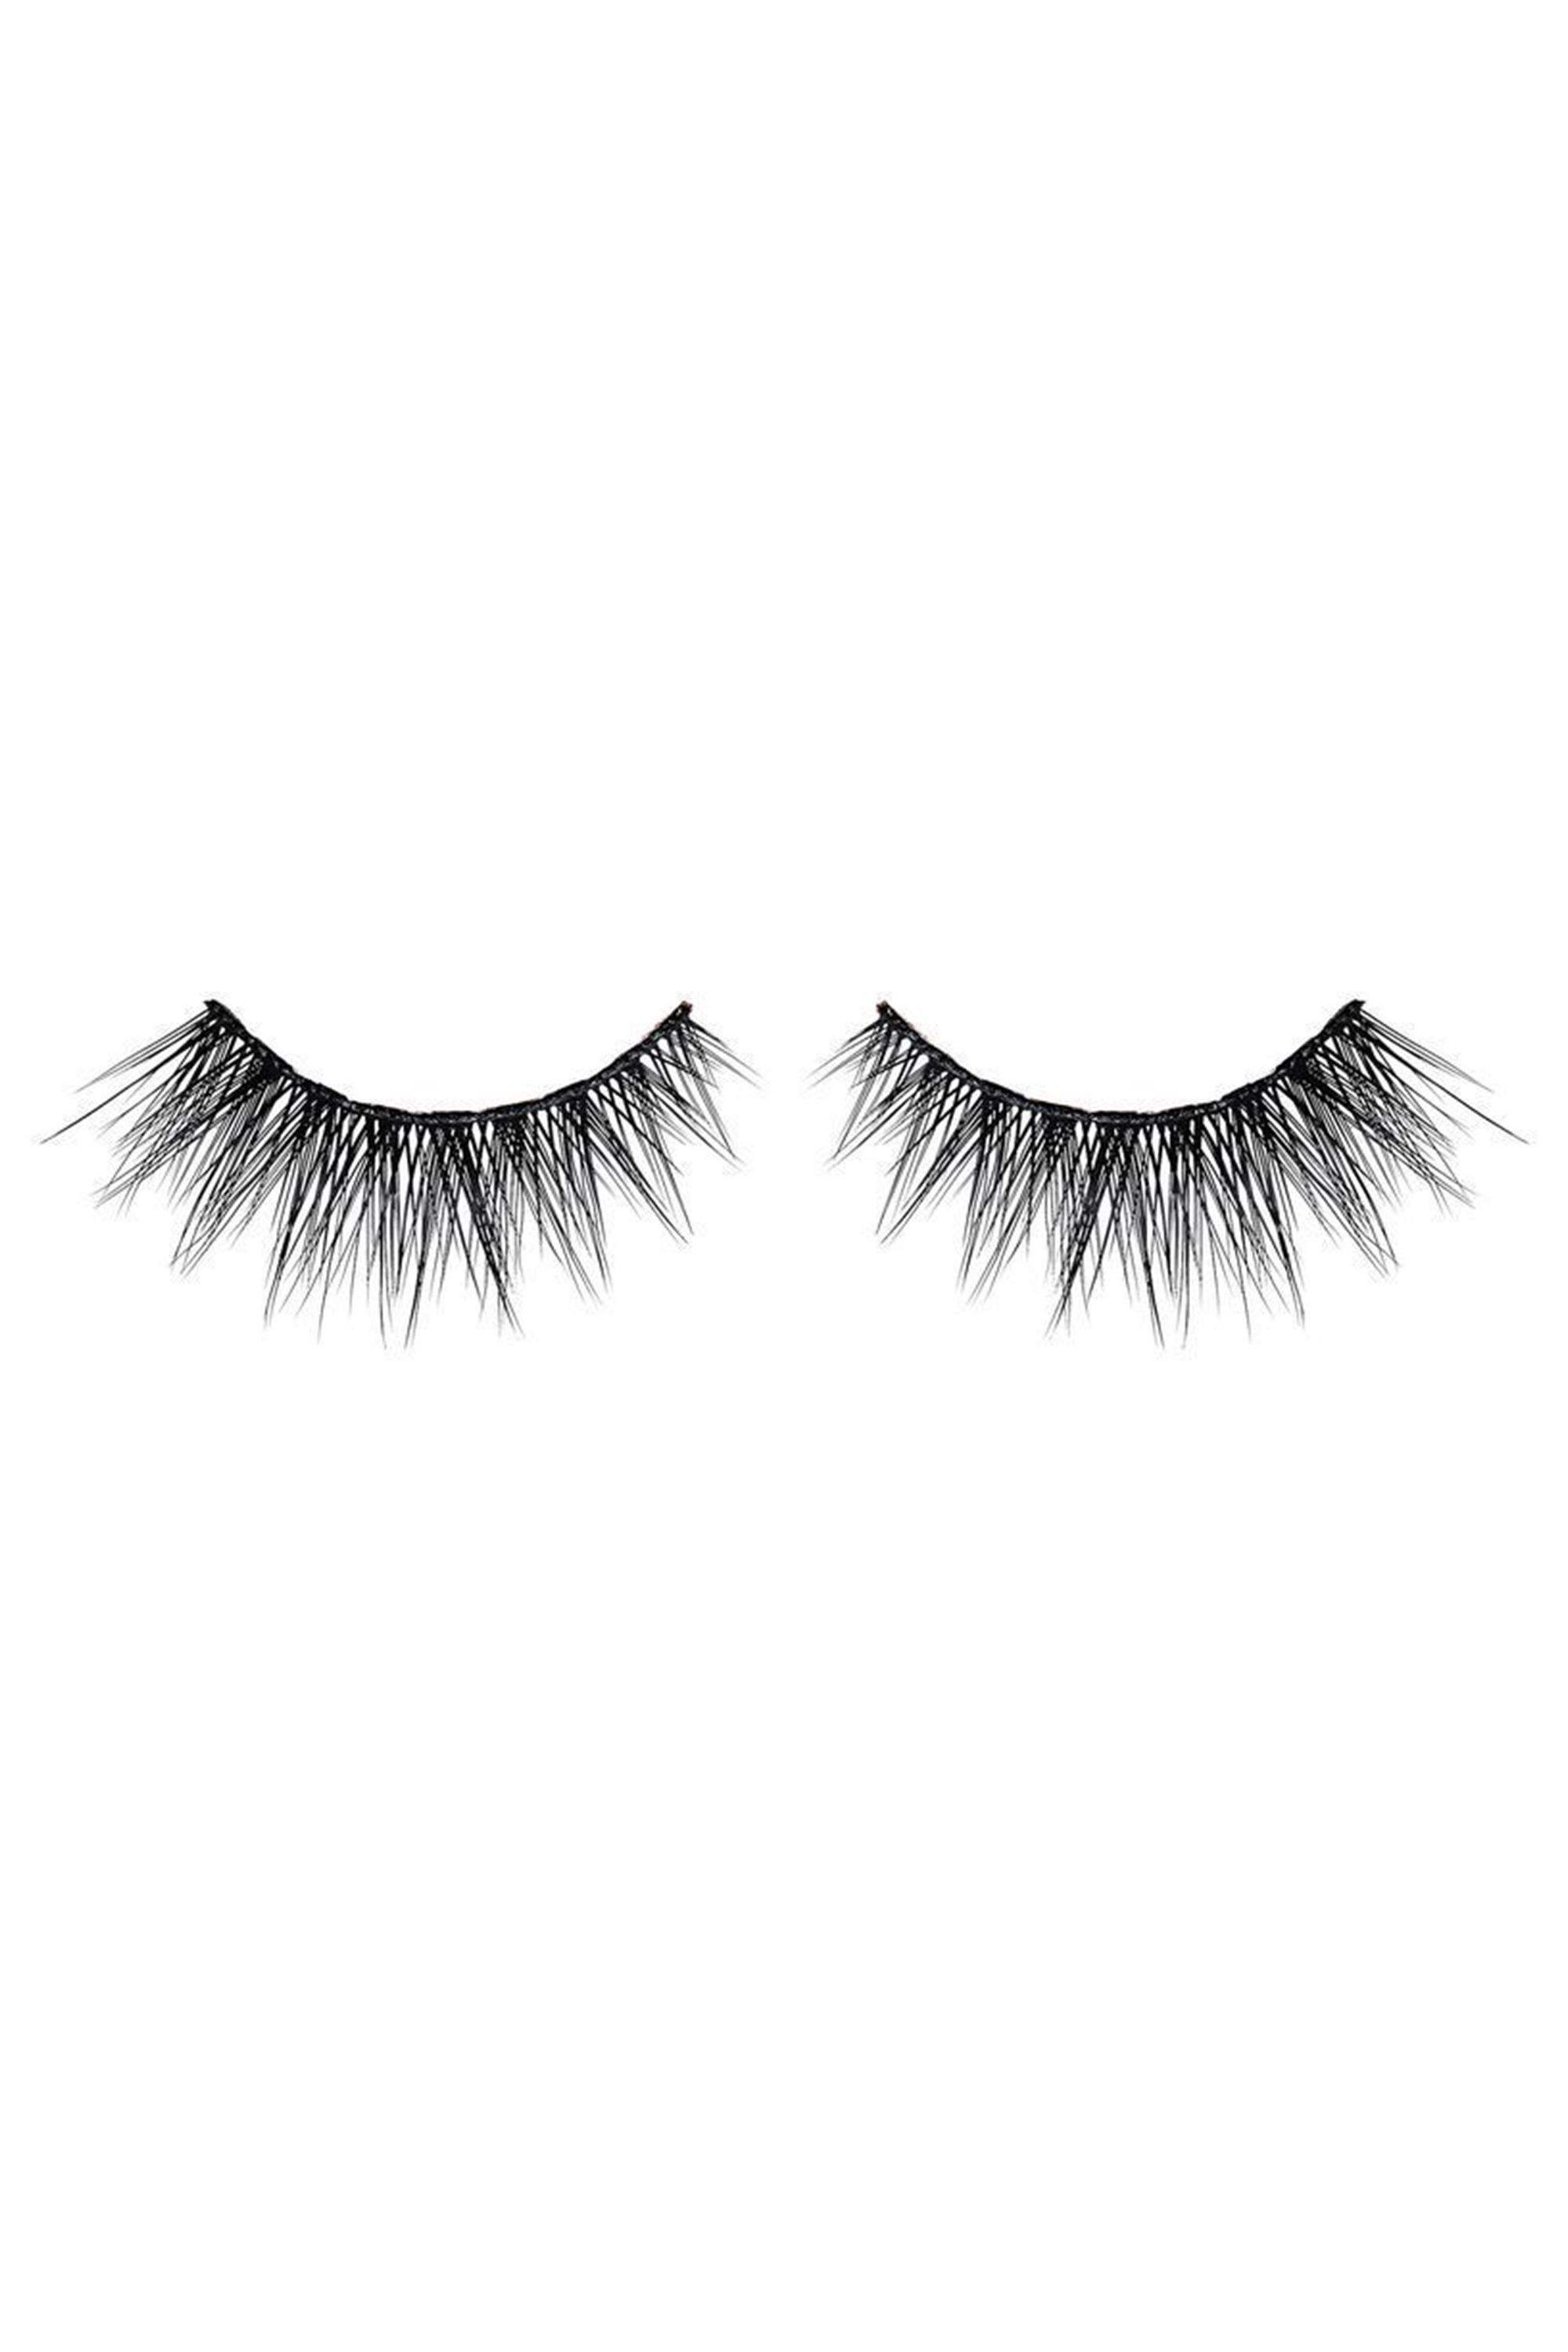 0d96b88821c The Best Fake Eyelashes of 2019 - 11 False Lashes That Look Real